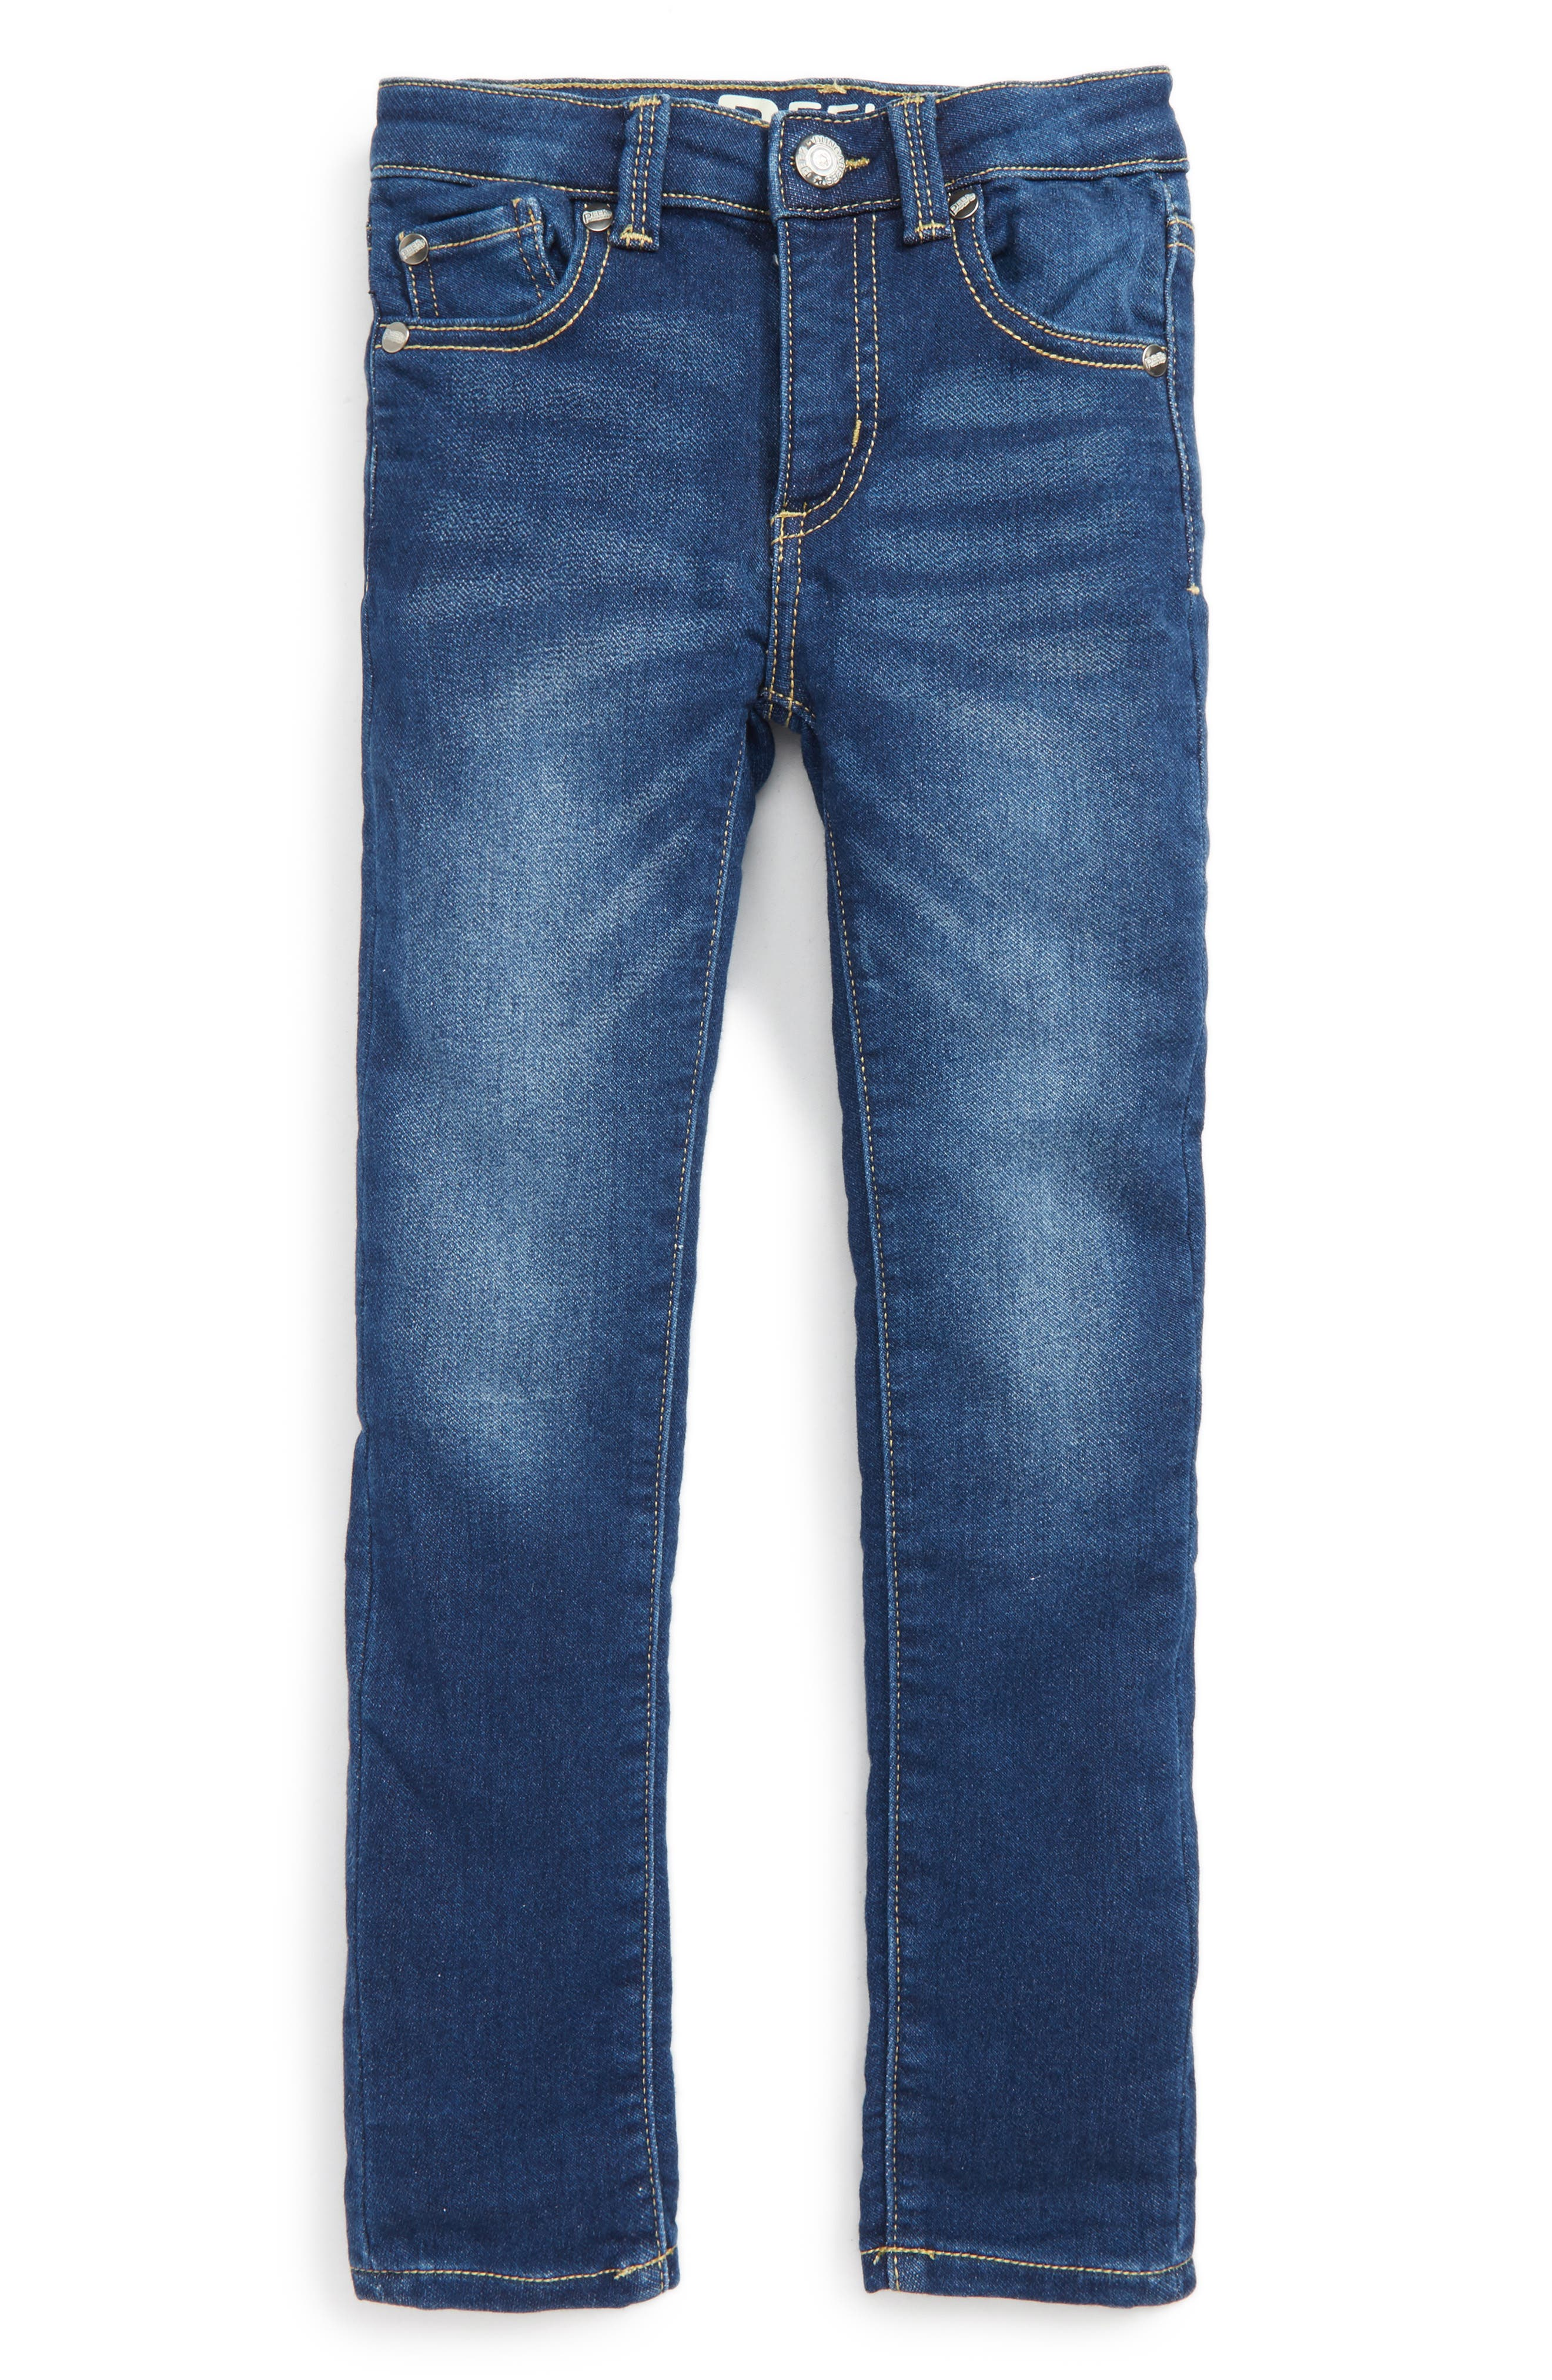 Taylor Skinny Jeans,                             Main thumbnail 1, color,                             Med Authentic